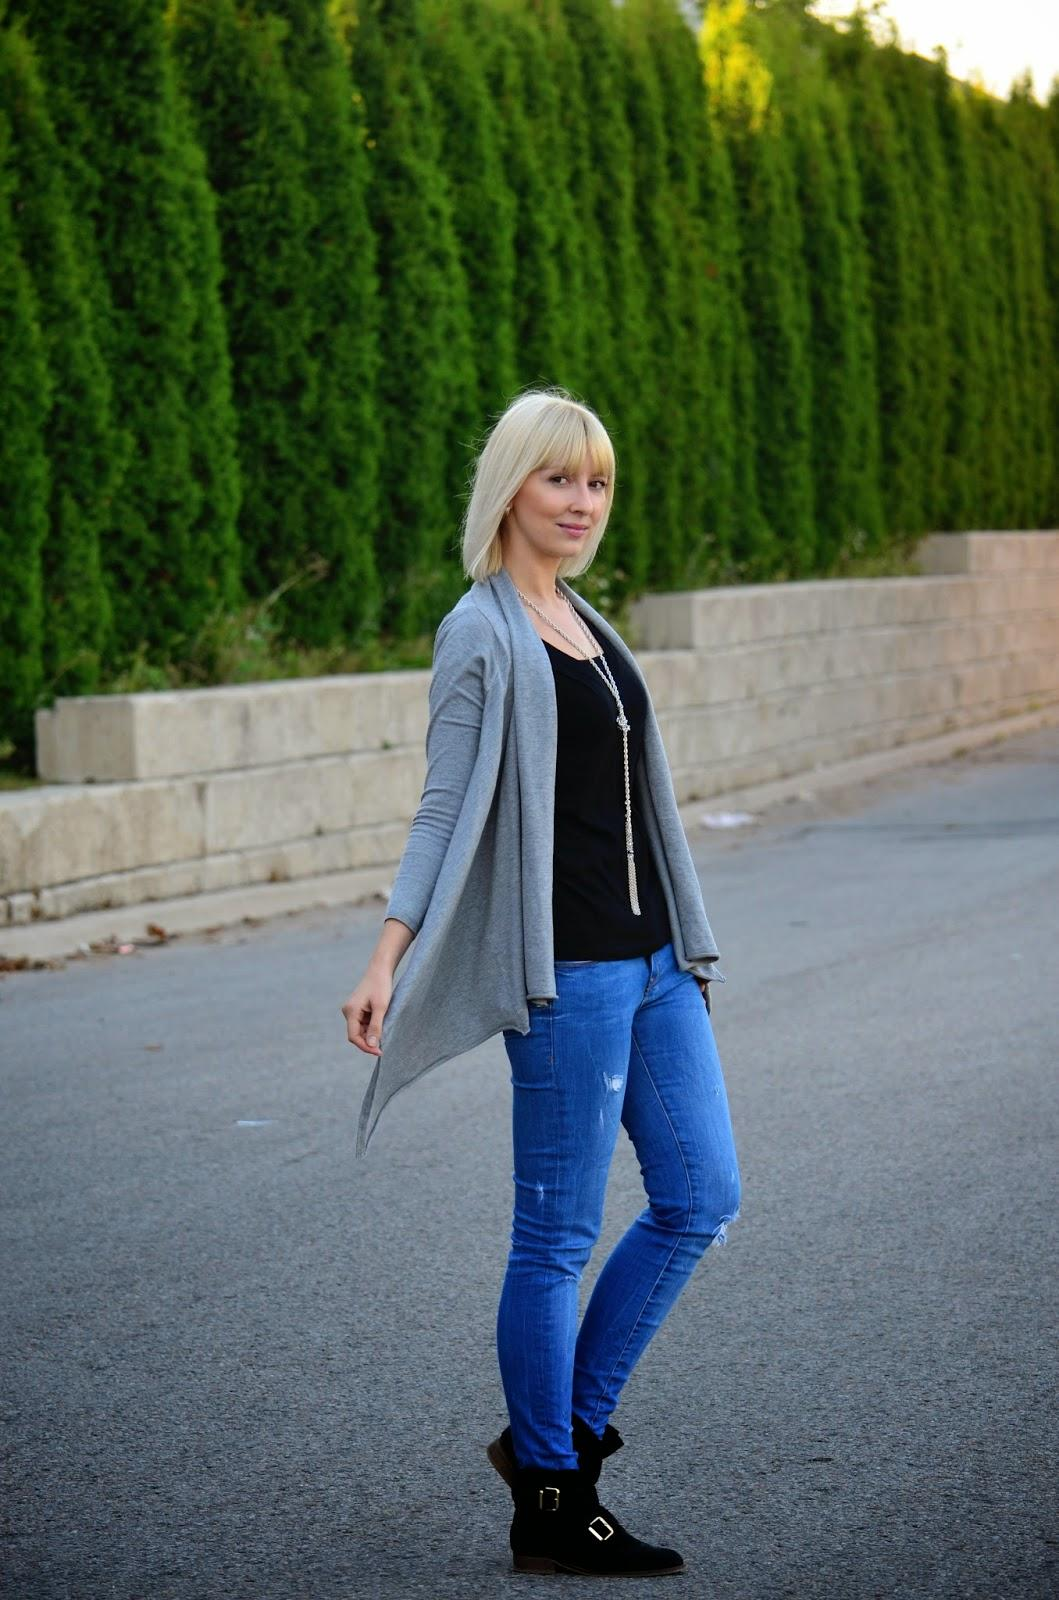 waterfall cardigan, fall style, how to wear cardigan, distressed jeans, zara jeans, zara cardigan